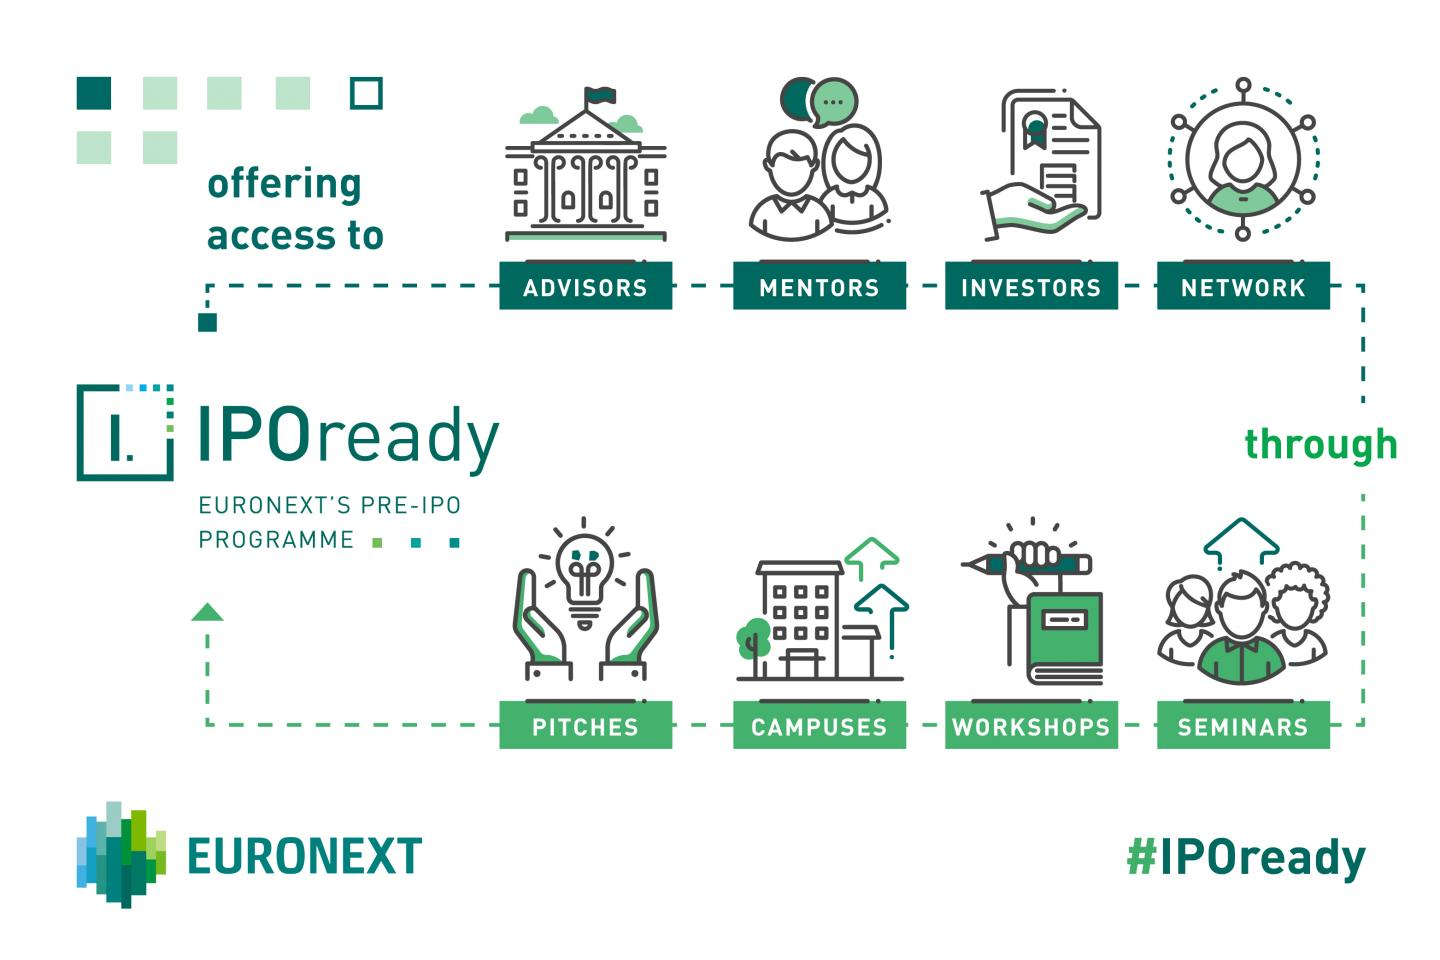 Format of the program IPOready